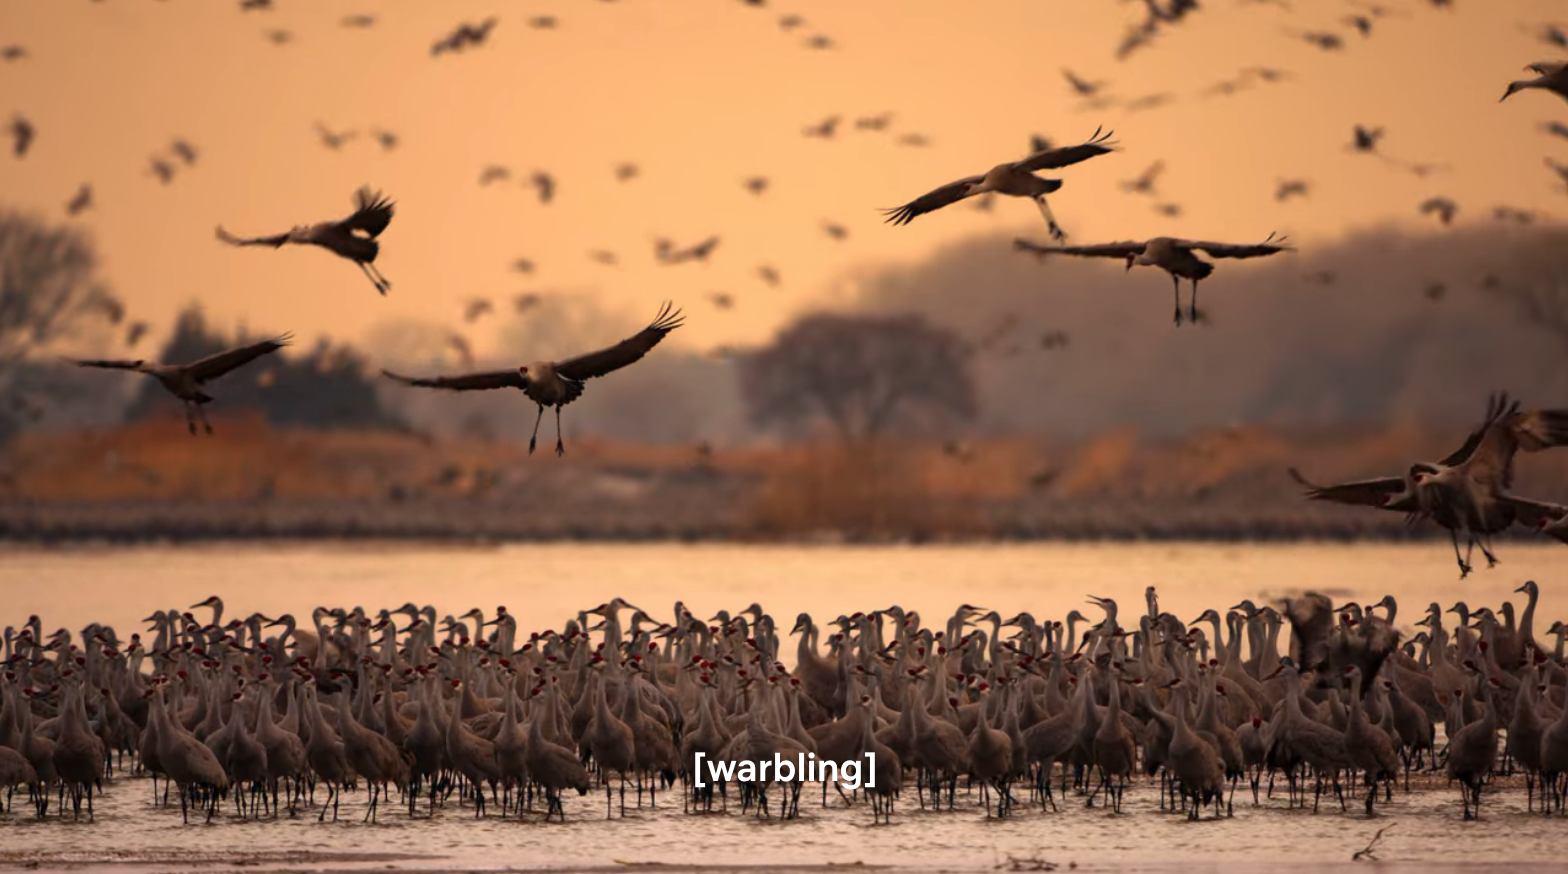 A flock of birds in African wetlands at sunset.